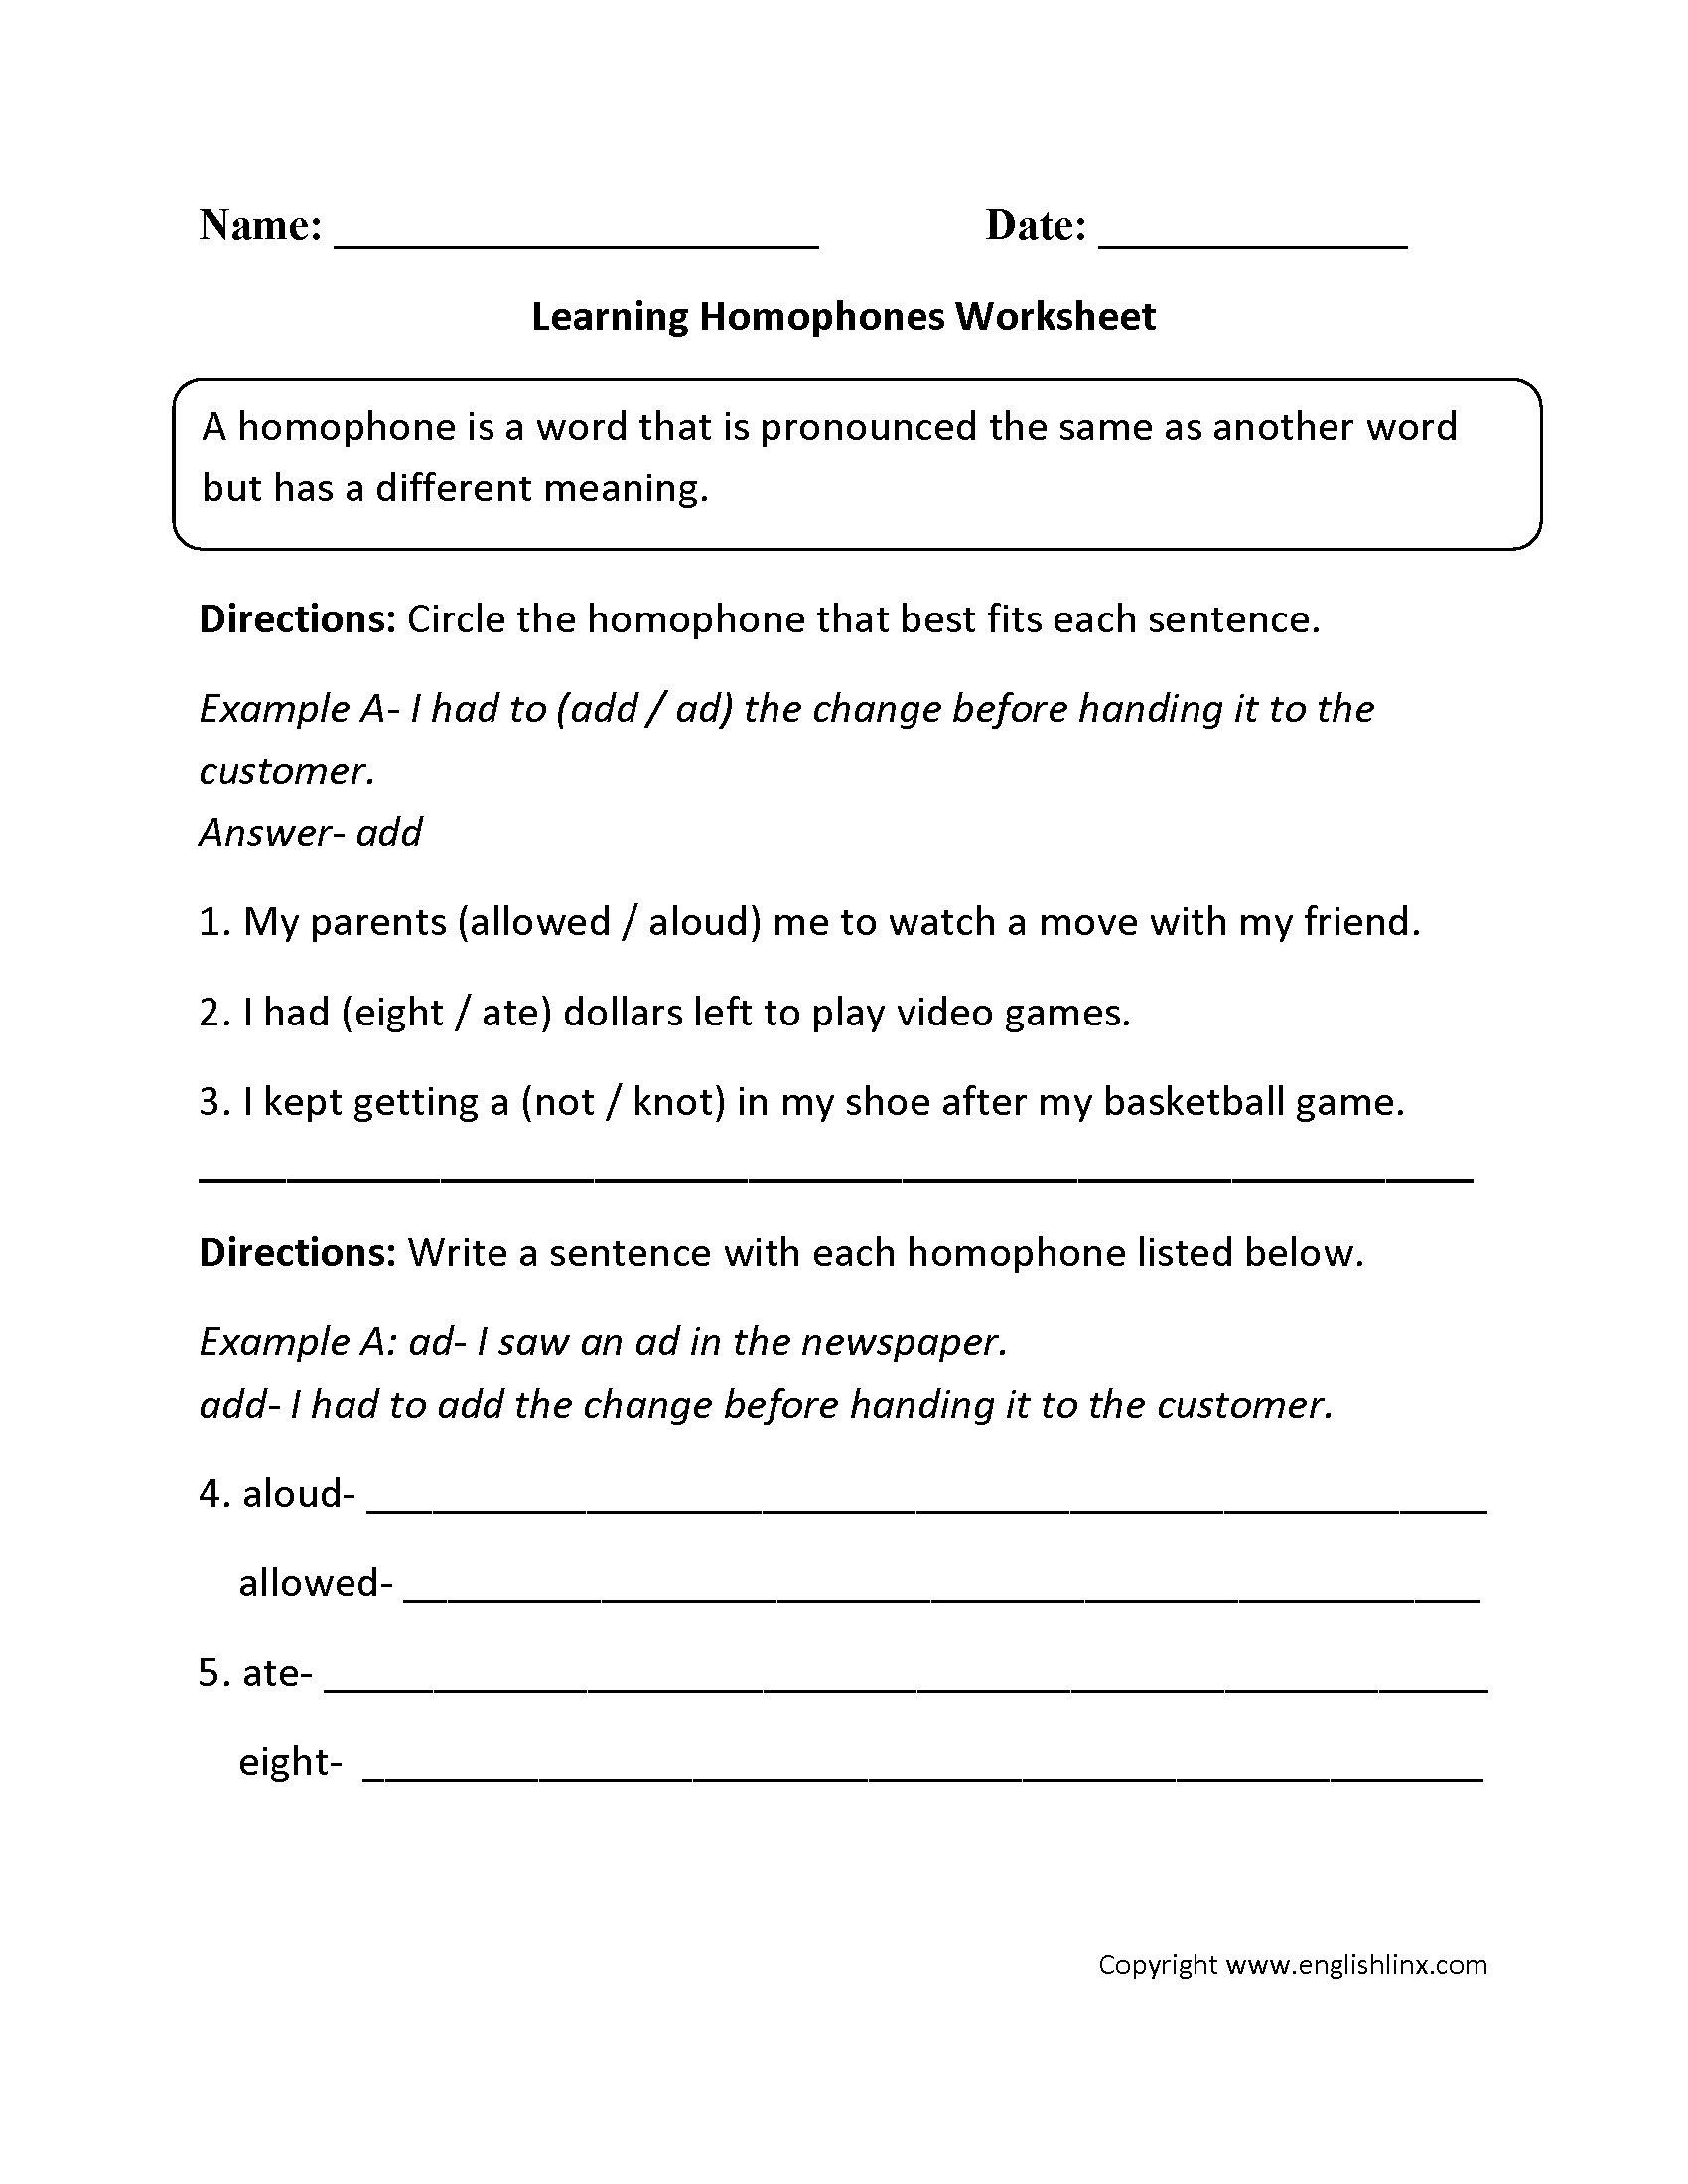 worksheet Homophones Worksheet Pdf vocabulary worksheets homophone intermediate worksheets